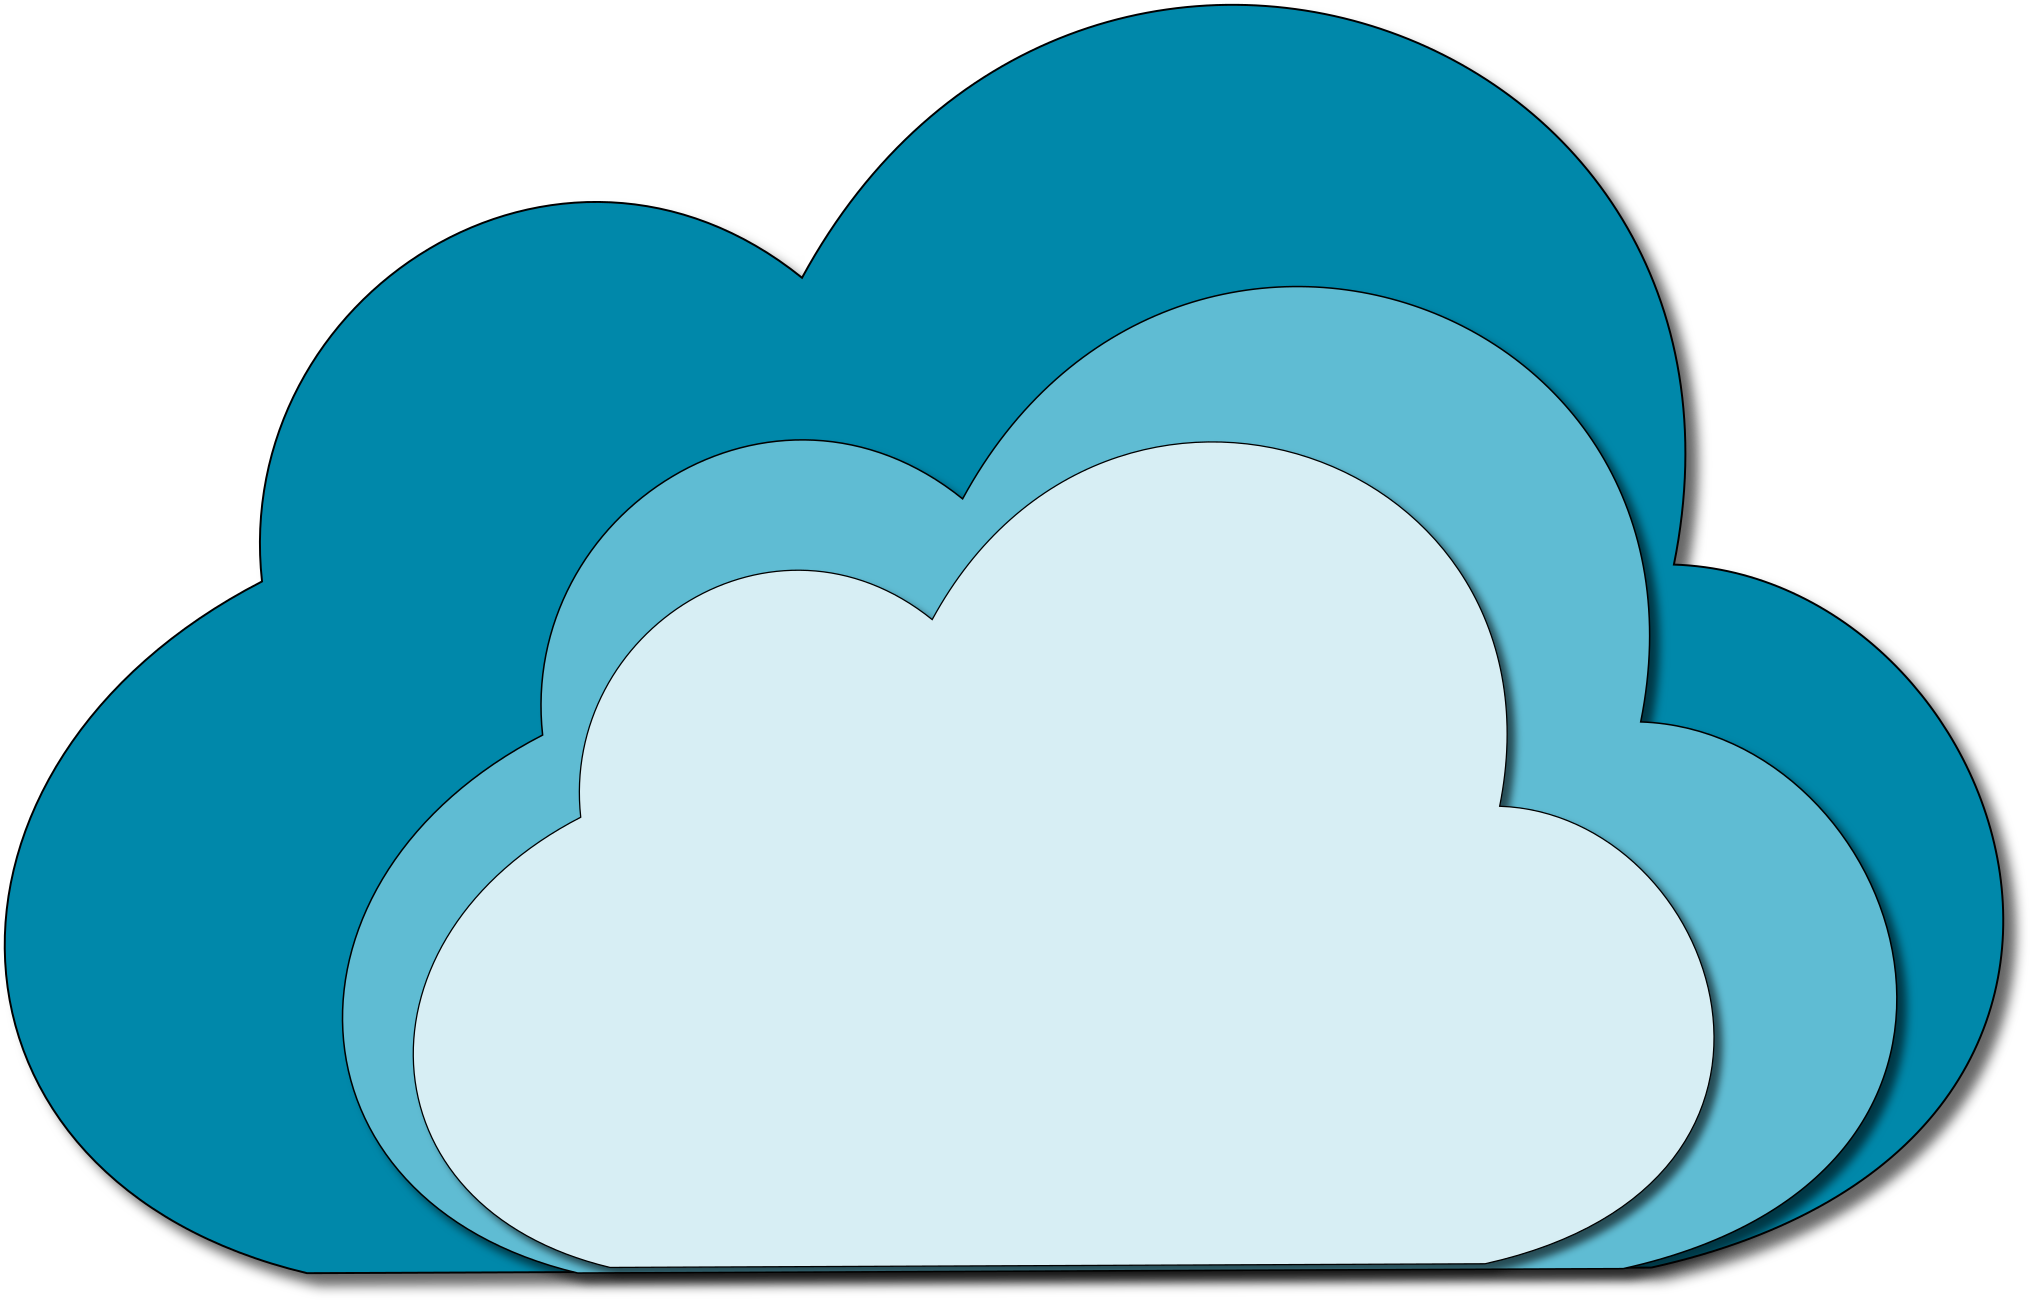 Cloud Clipart Clipart Panda Free Clipart Images Clouds.